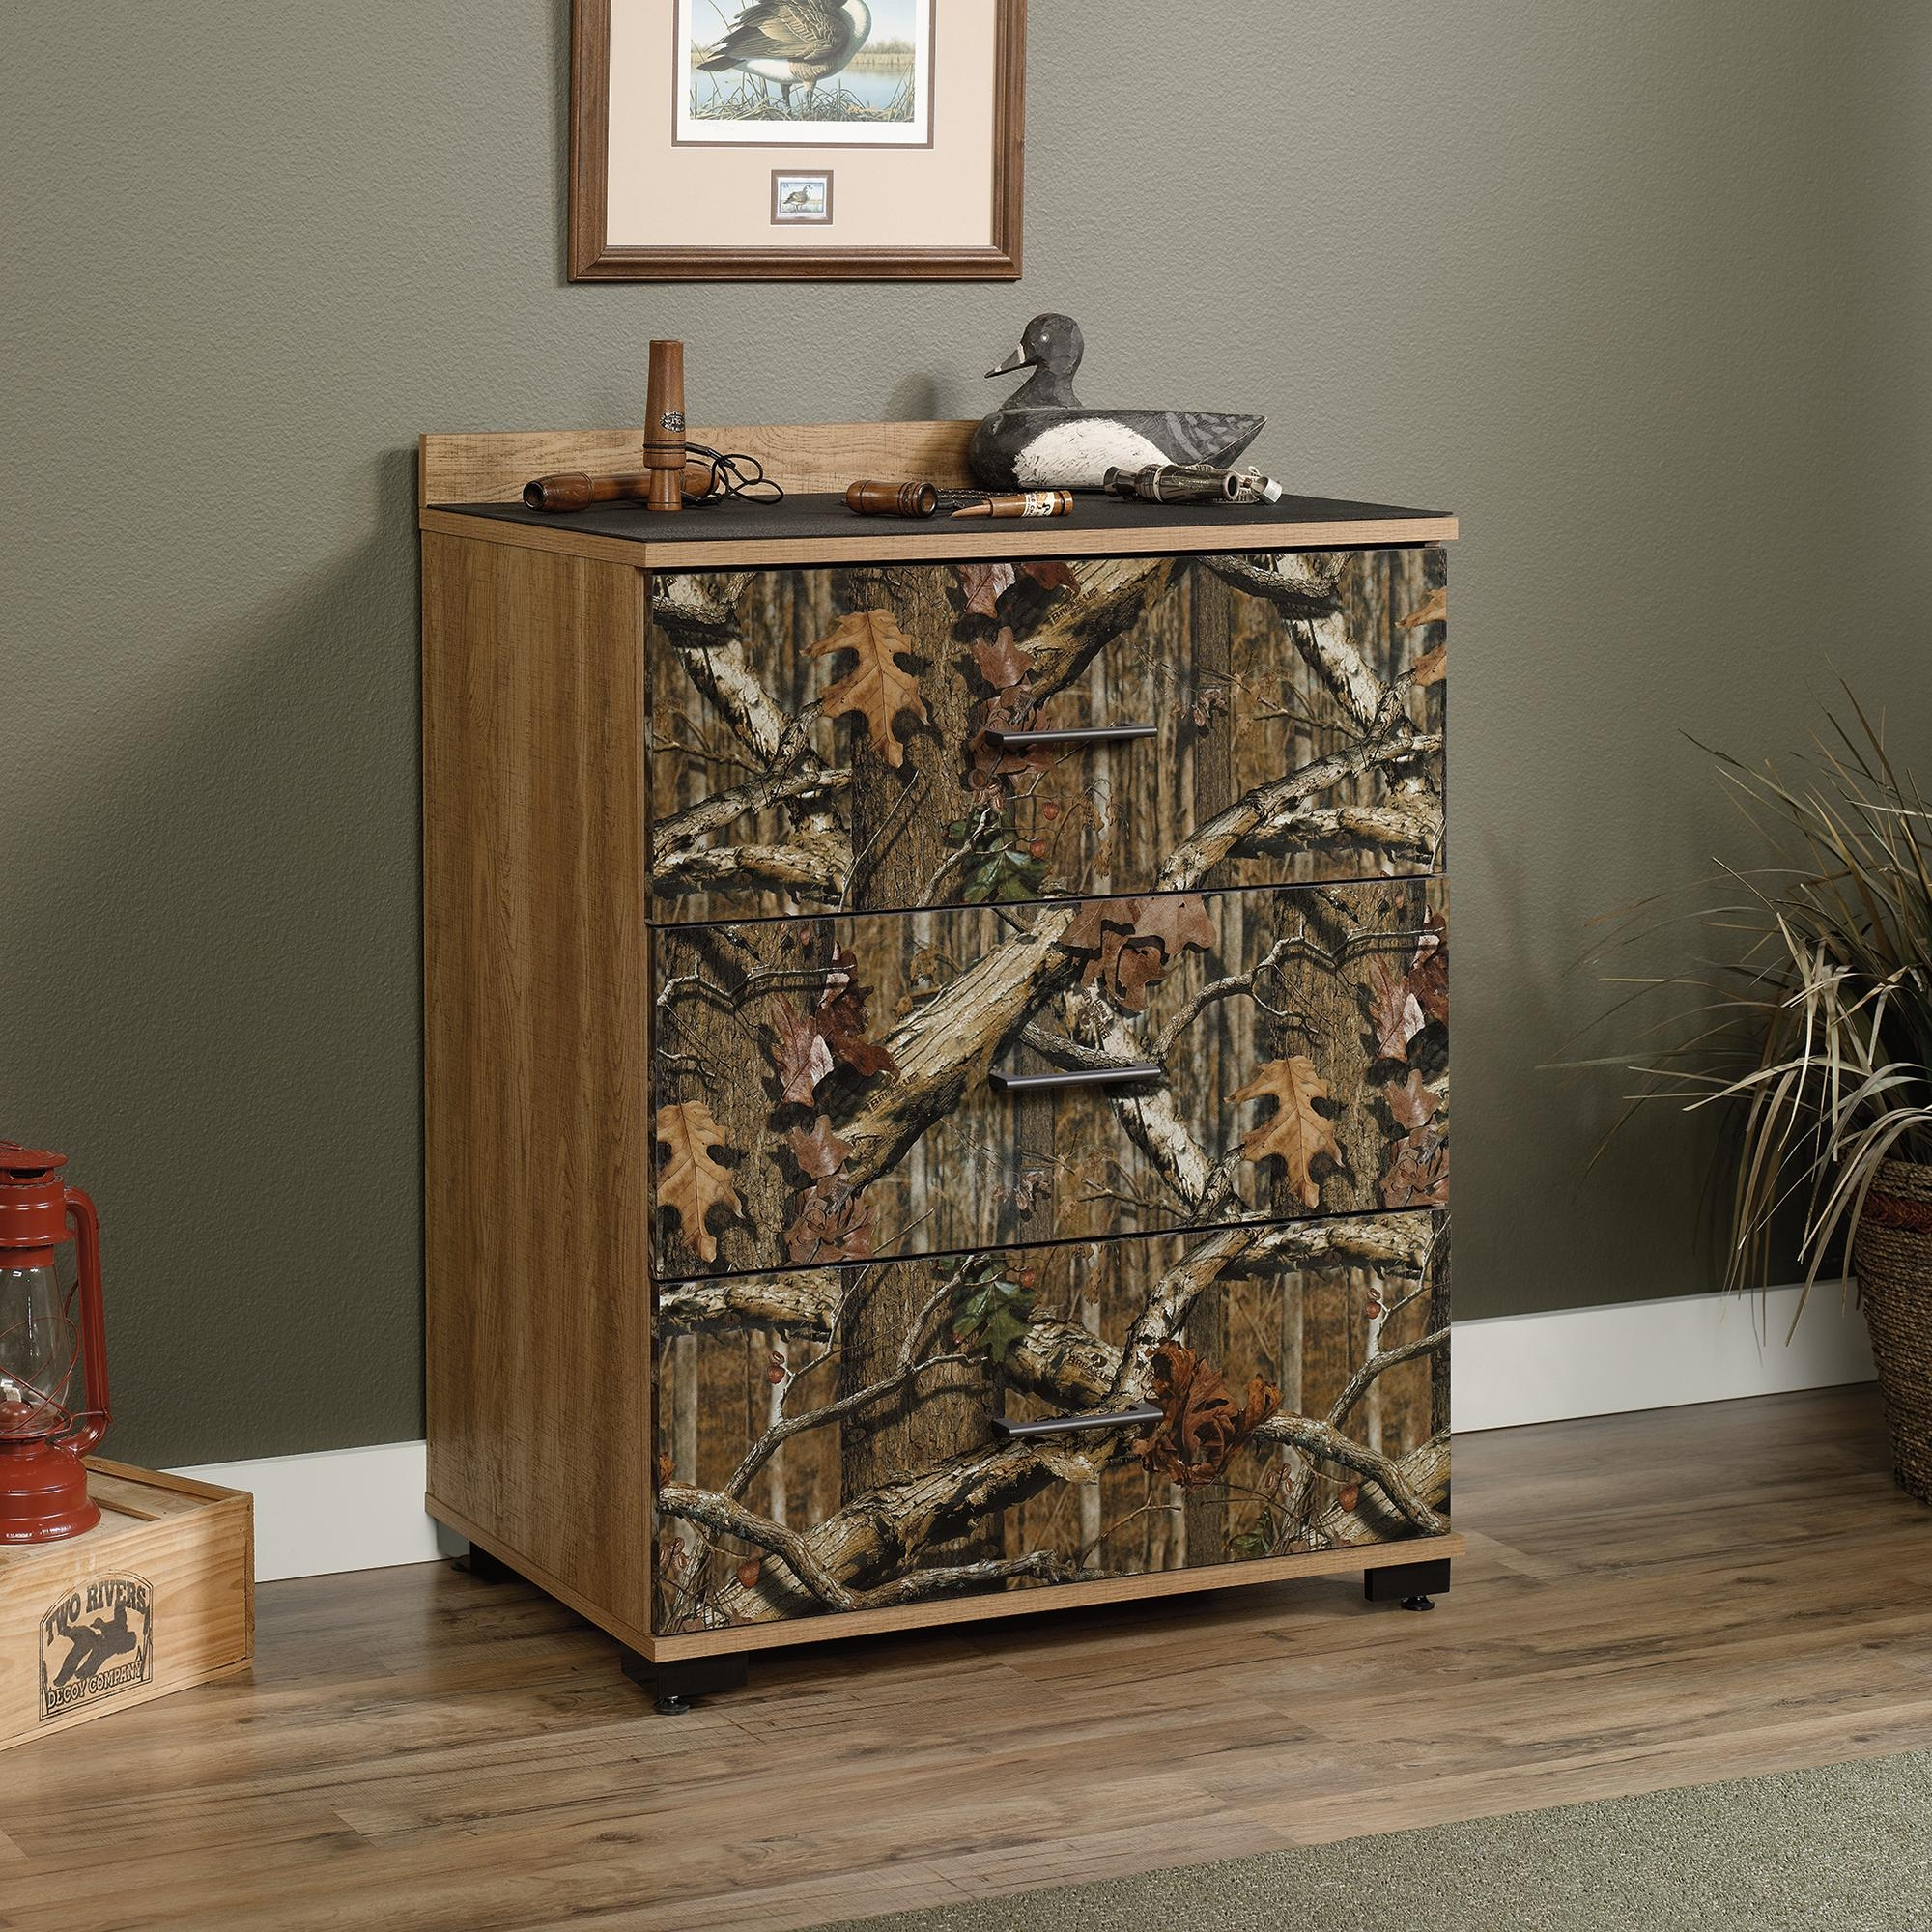 Furniture: Camo Living Room Decor | Camo Couches For Sale Pertaining To Camouflage Sofas (View 13 of 20)